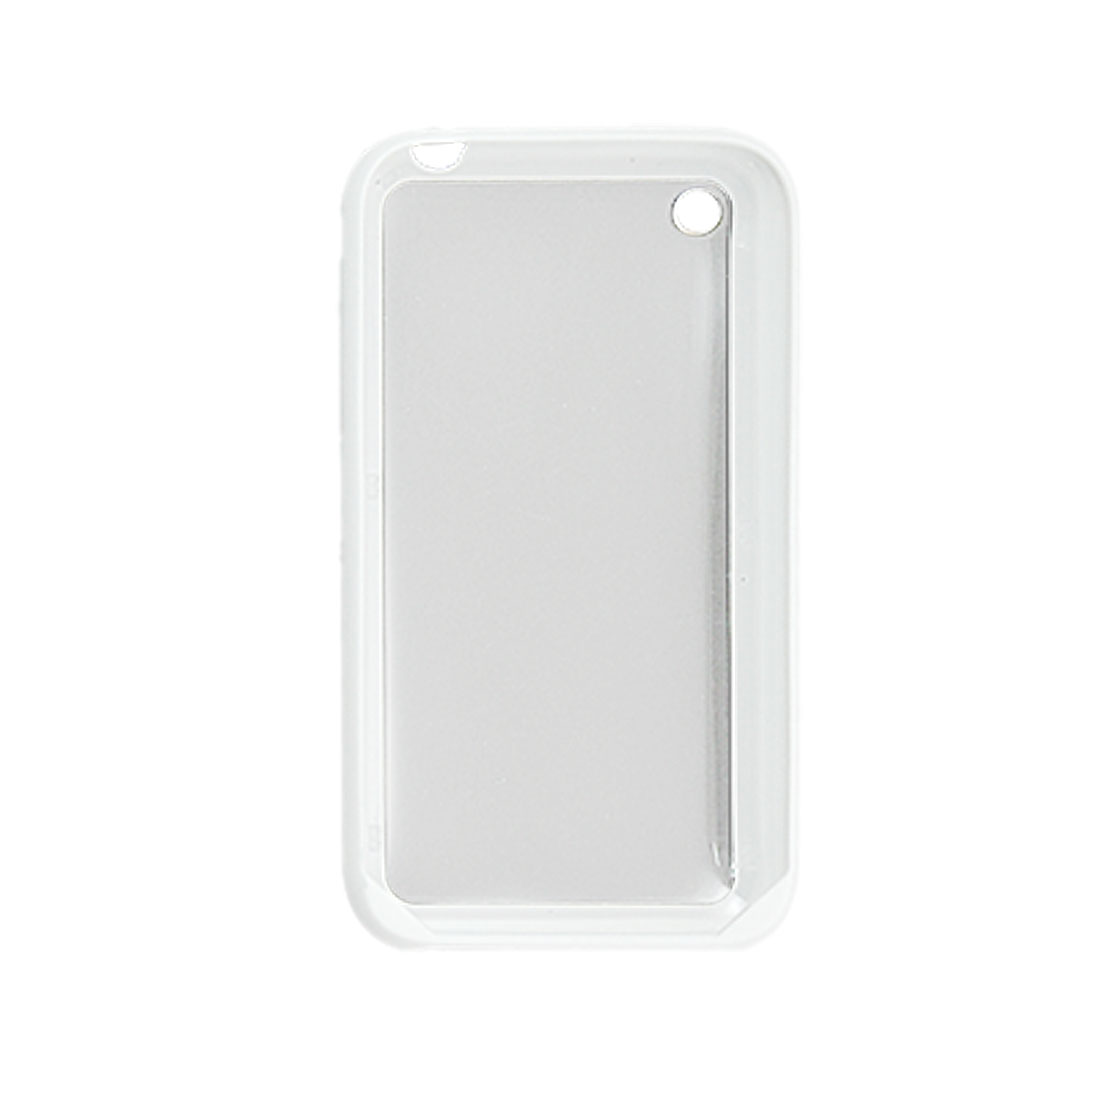 Protective White Hard Back Cover Shell Screen Guard for iPhone 3G